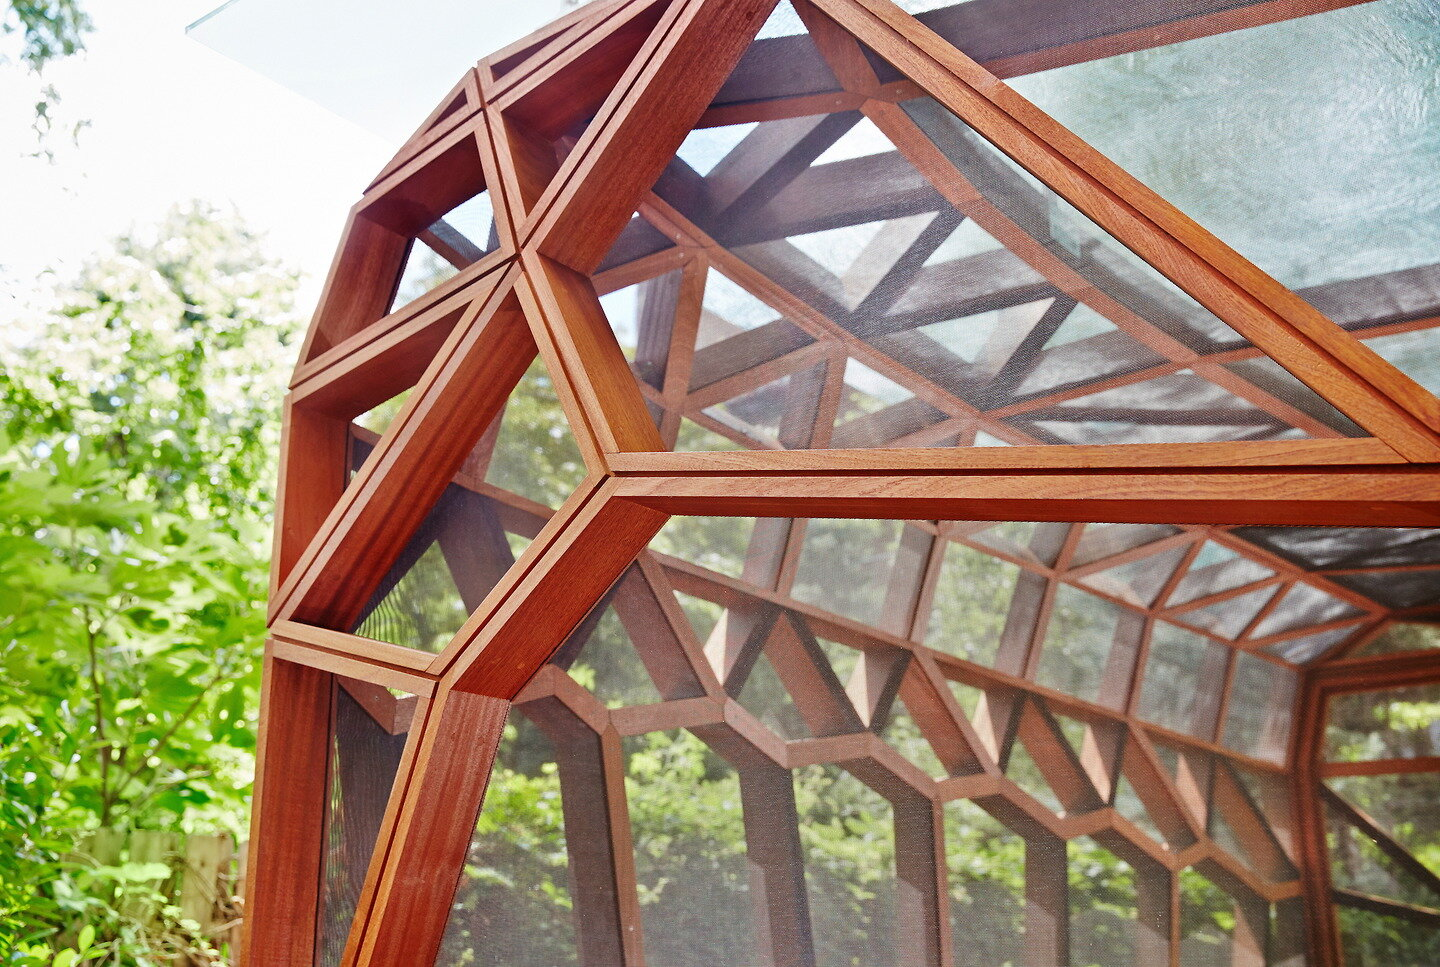 814 Pavilion designed by CDR Studio Architects and photographed by John Muggenborg.